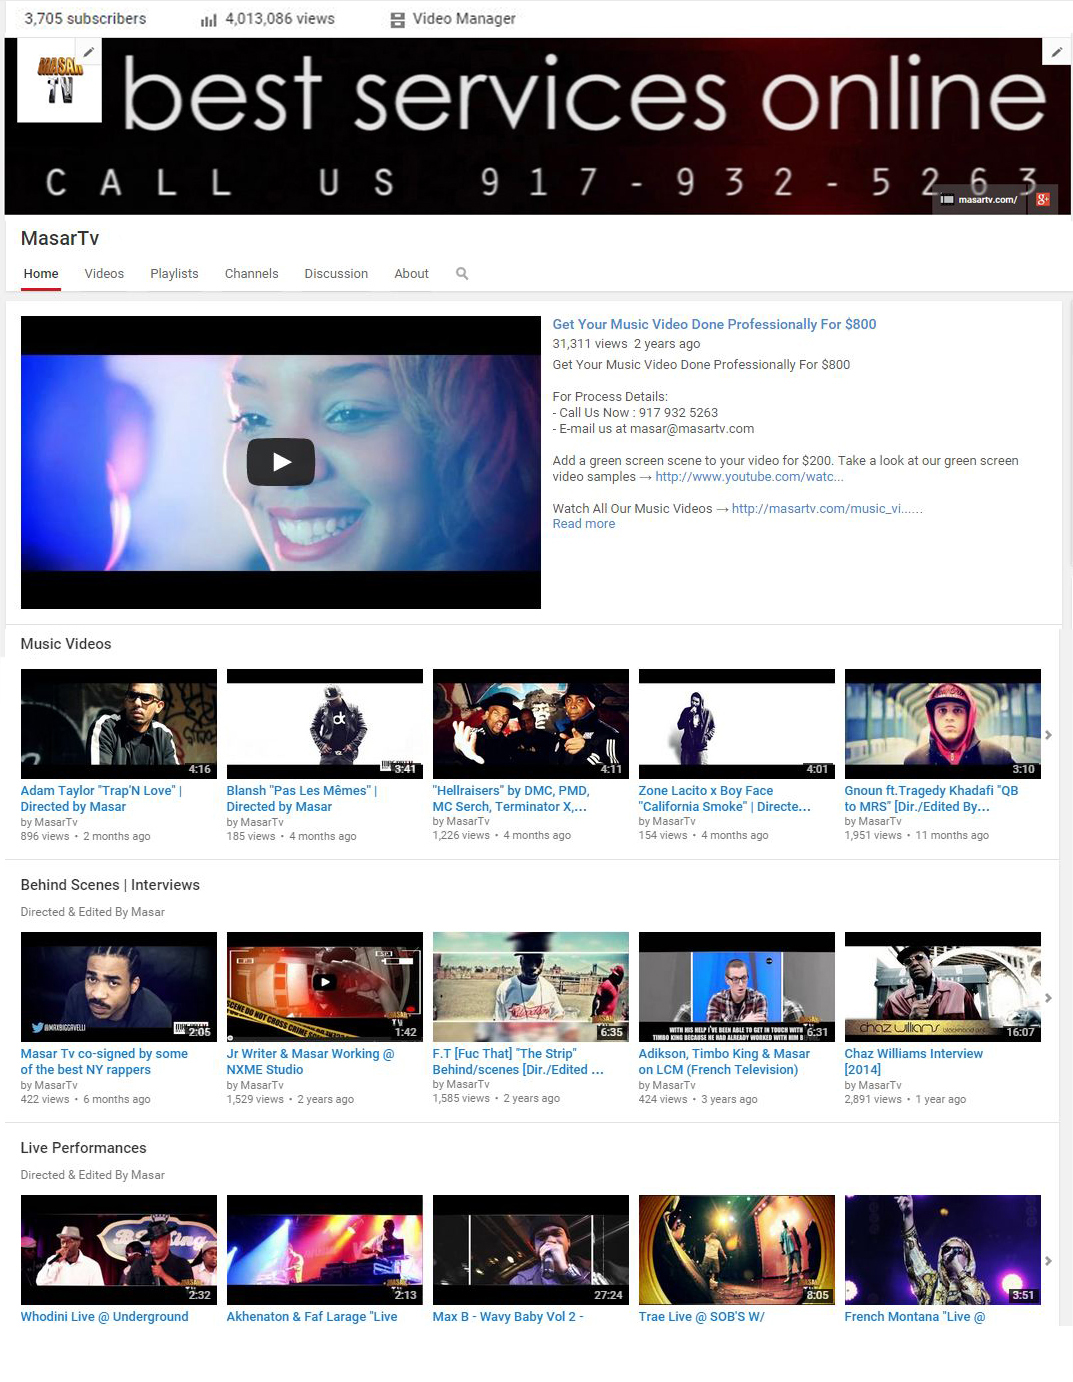 4 million views on Masar Tv YouTube Channel